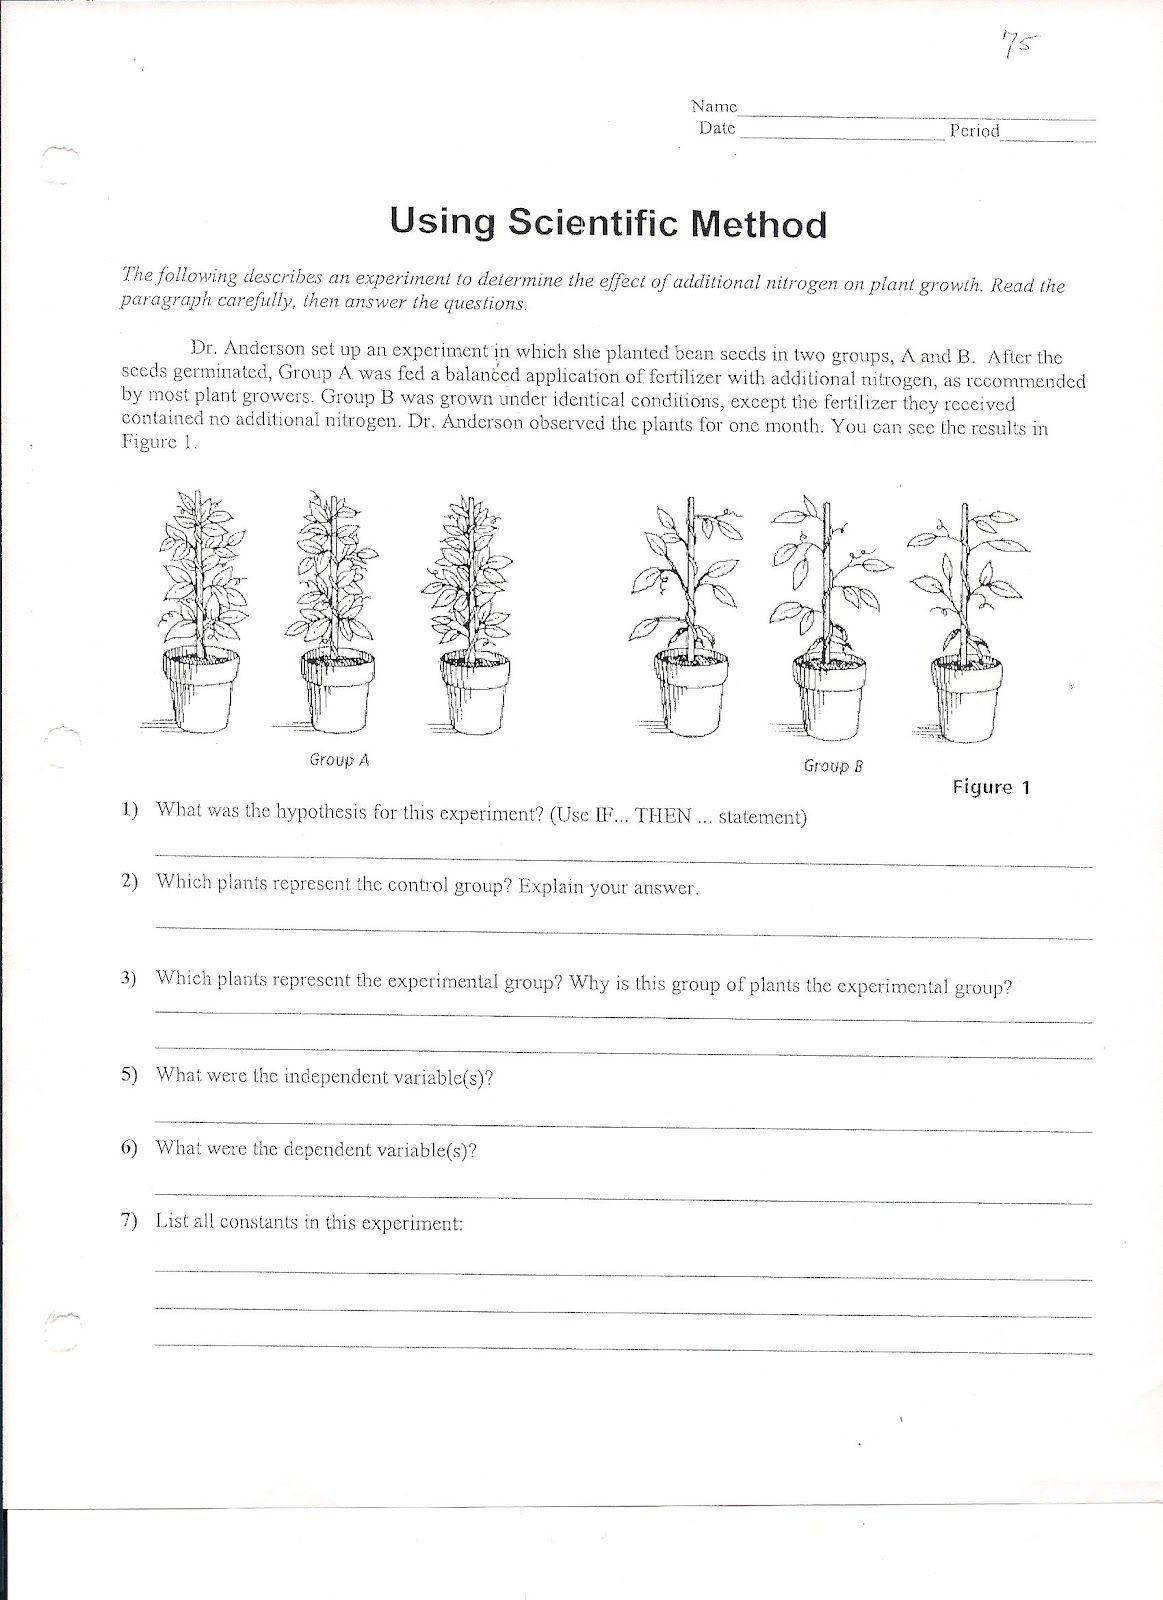 Worksheets Science And The Scientific Method Worksheet usingscientificmethodworksheet jpg pixels for my friedmans foundations in science scientific method worksheet